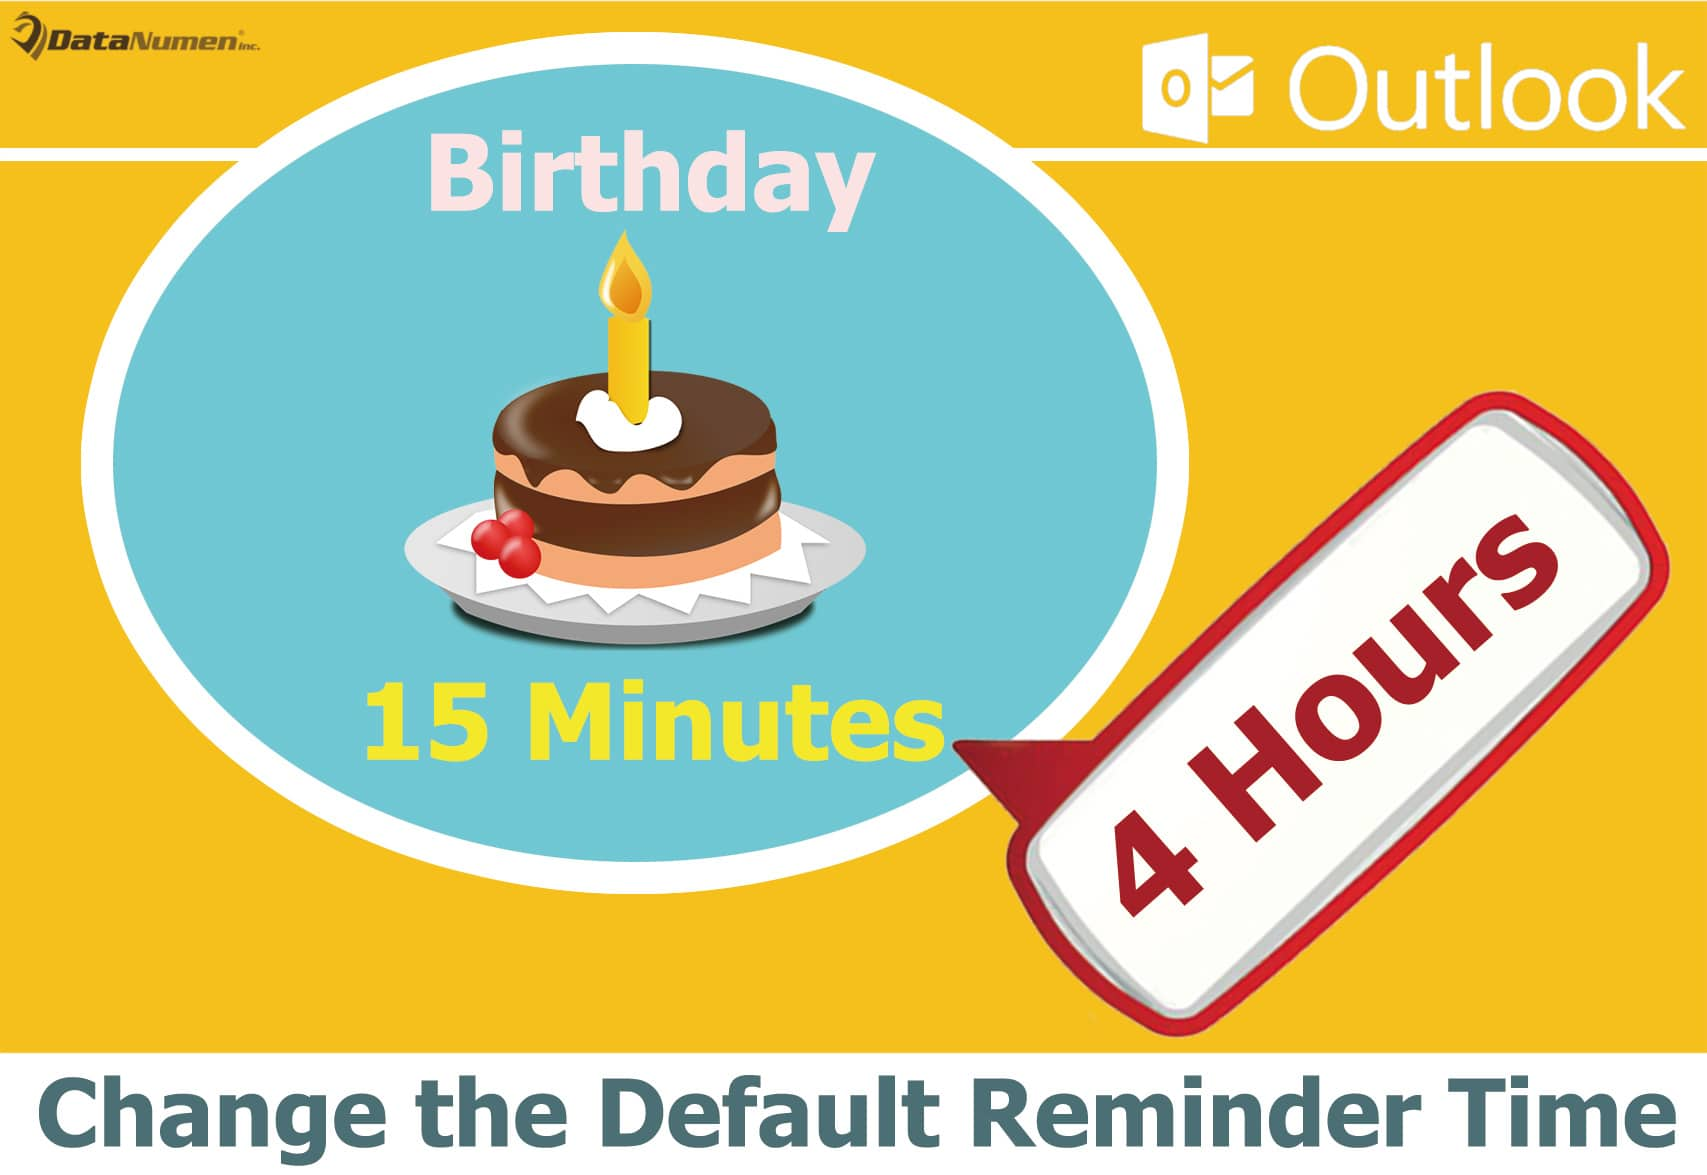 Change the Default Reminder Time for Birthday Events in Your Outlook